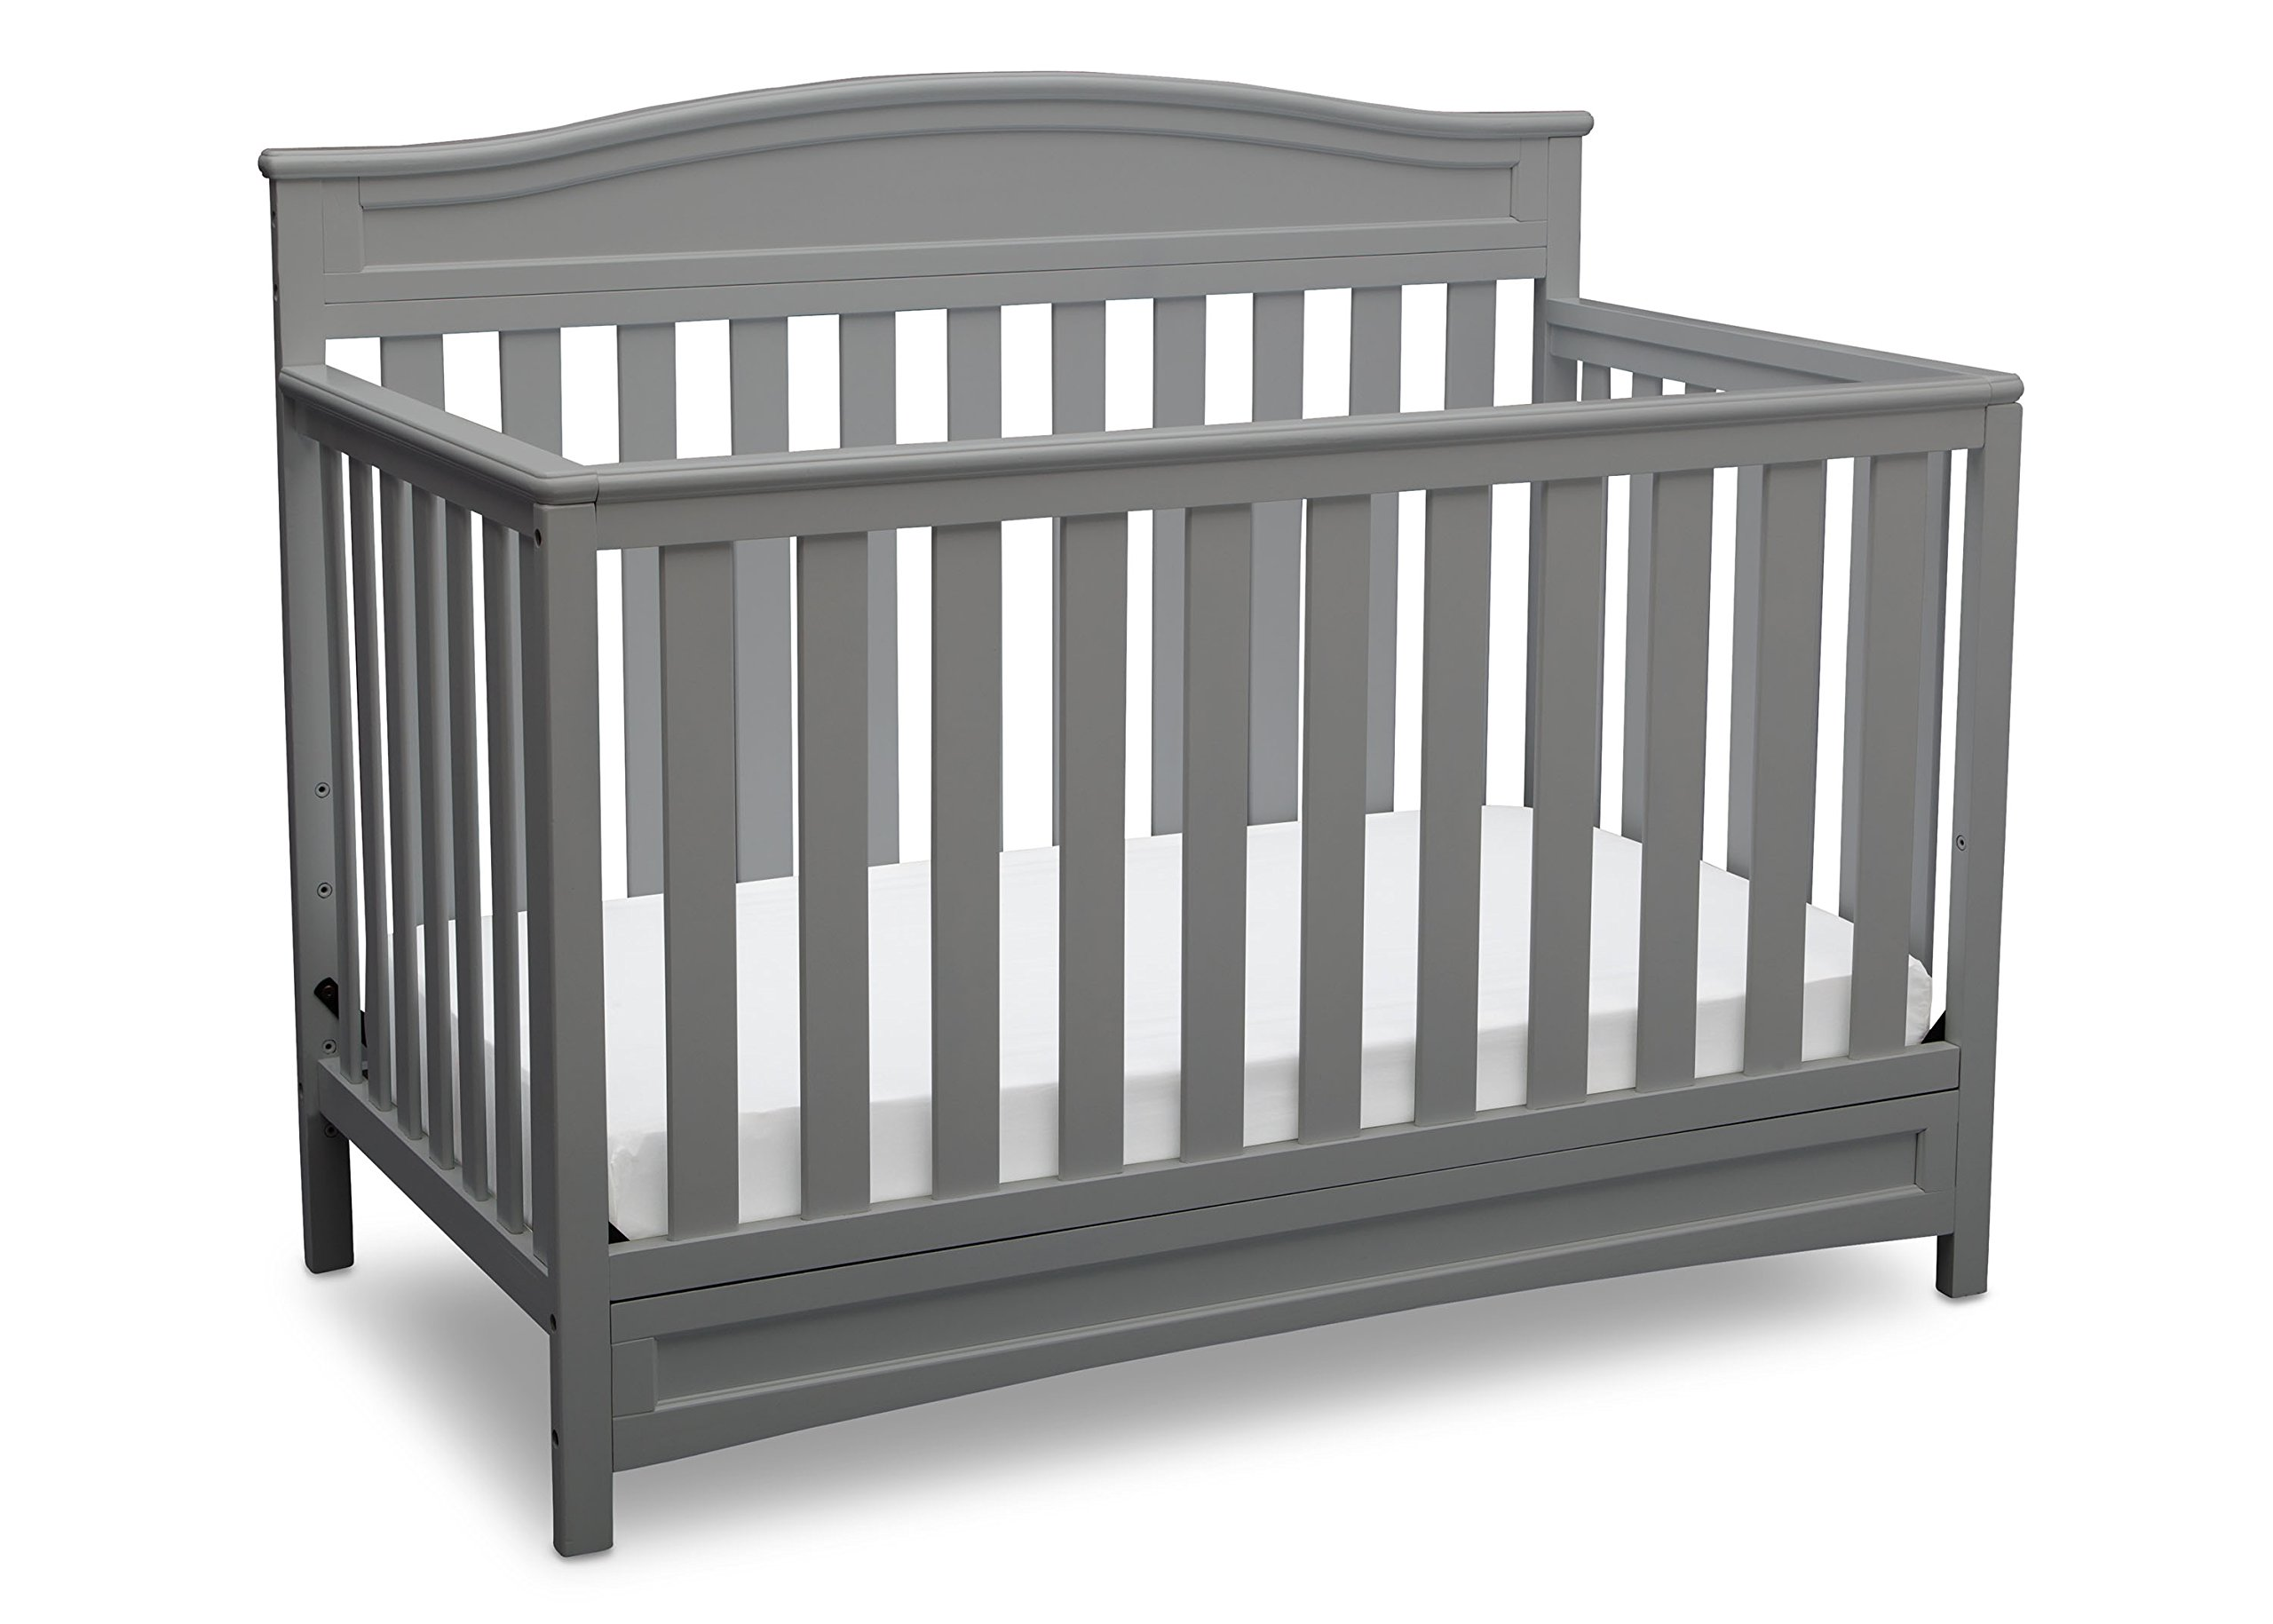 73decf91b35 Amazon.com   Delta Children Emery 4-in-1 Convertible Baby Crib